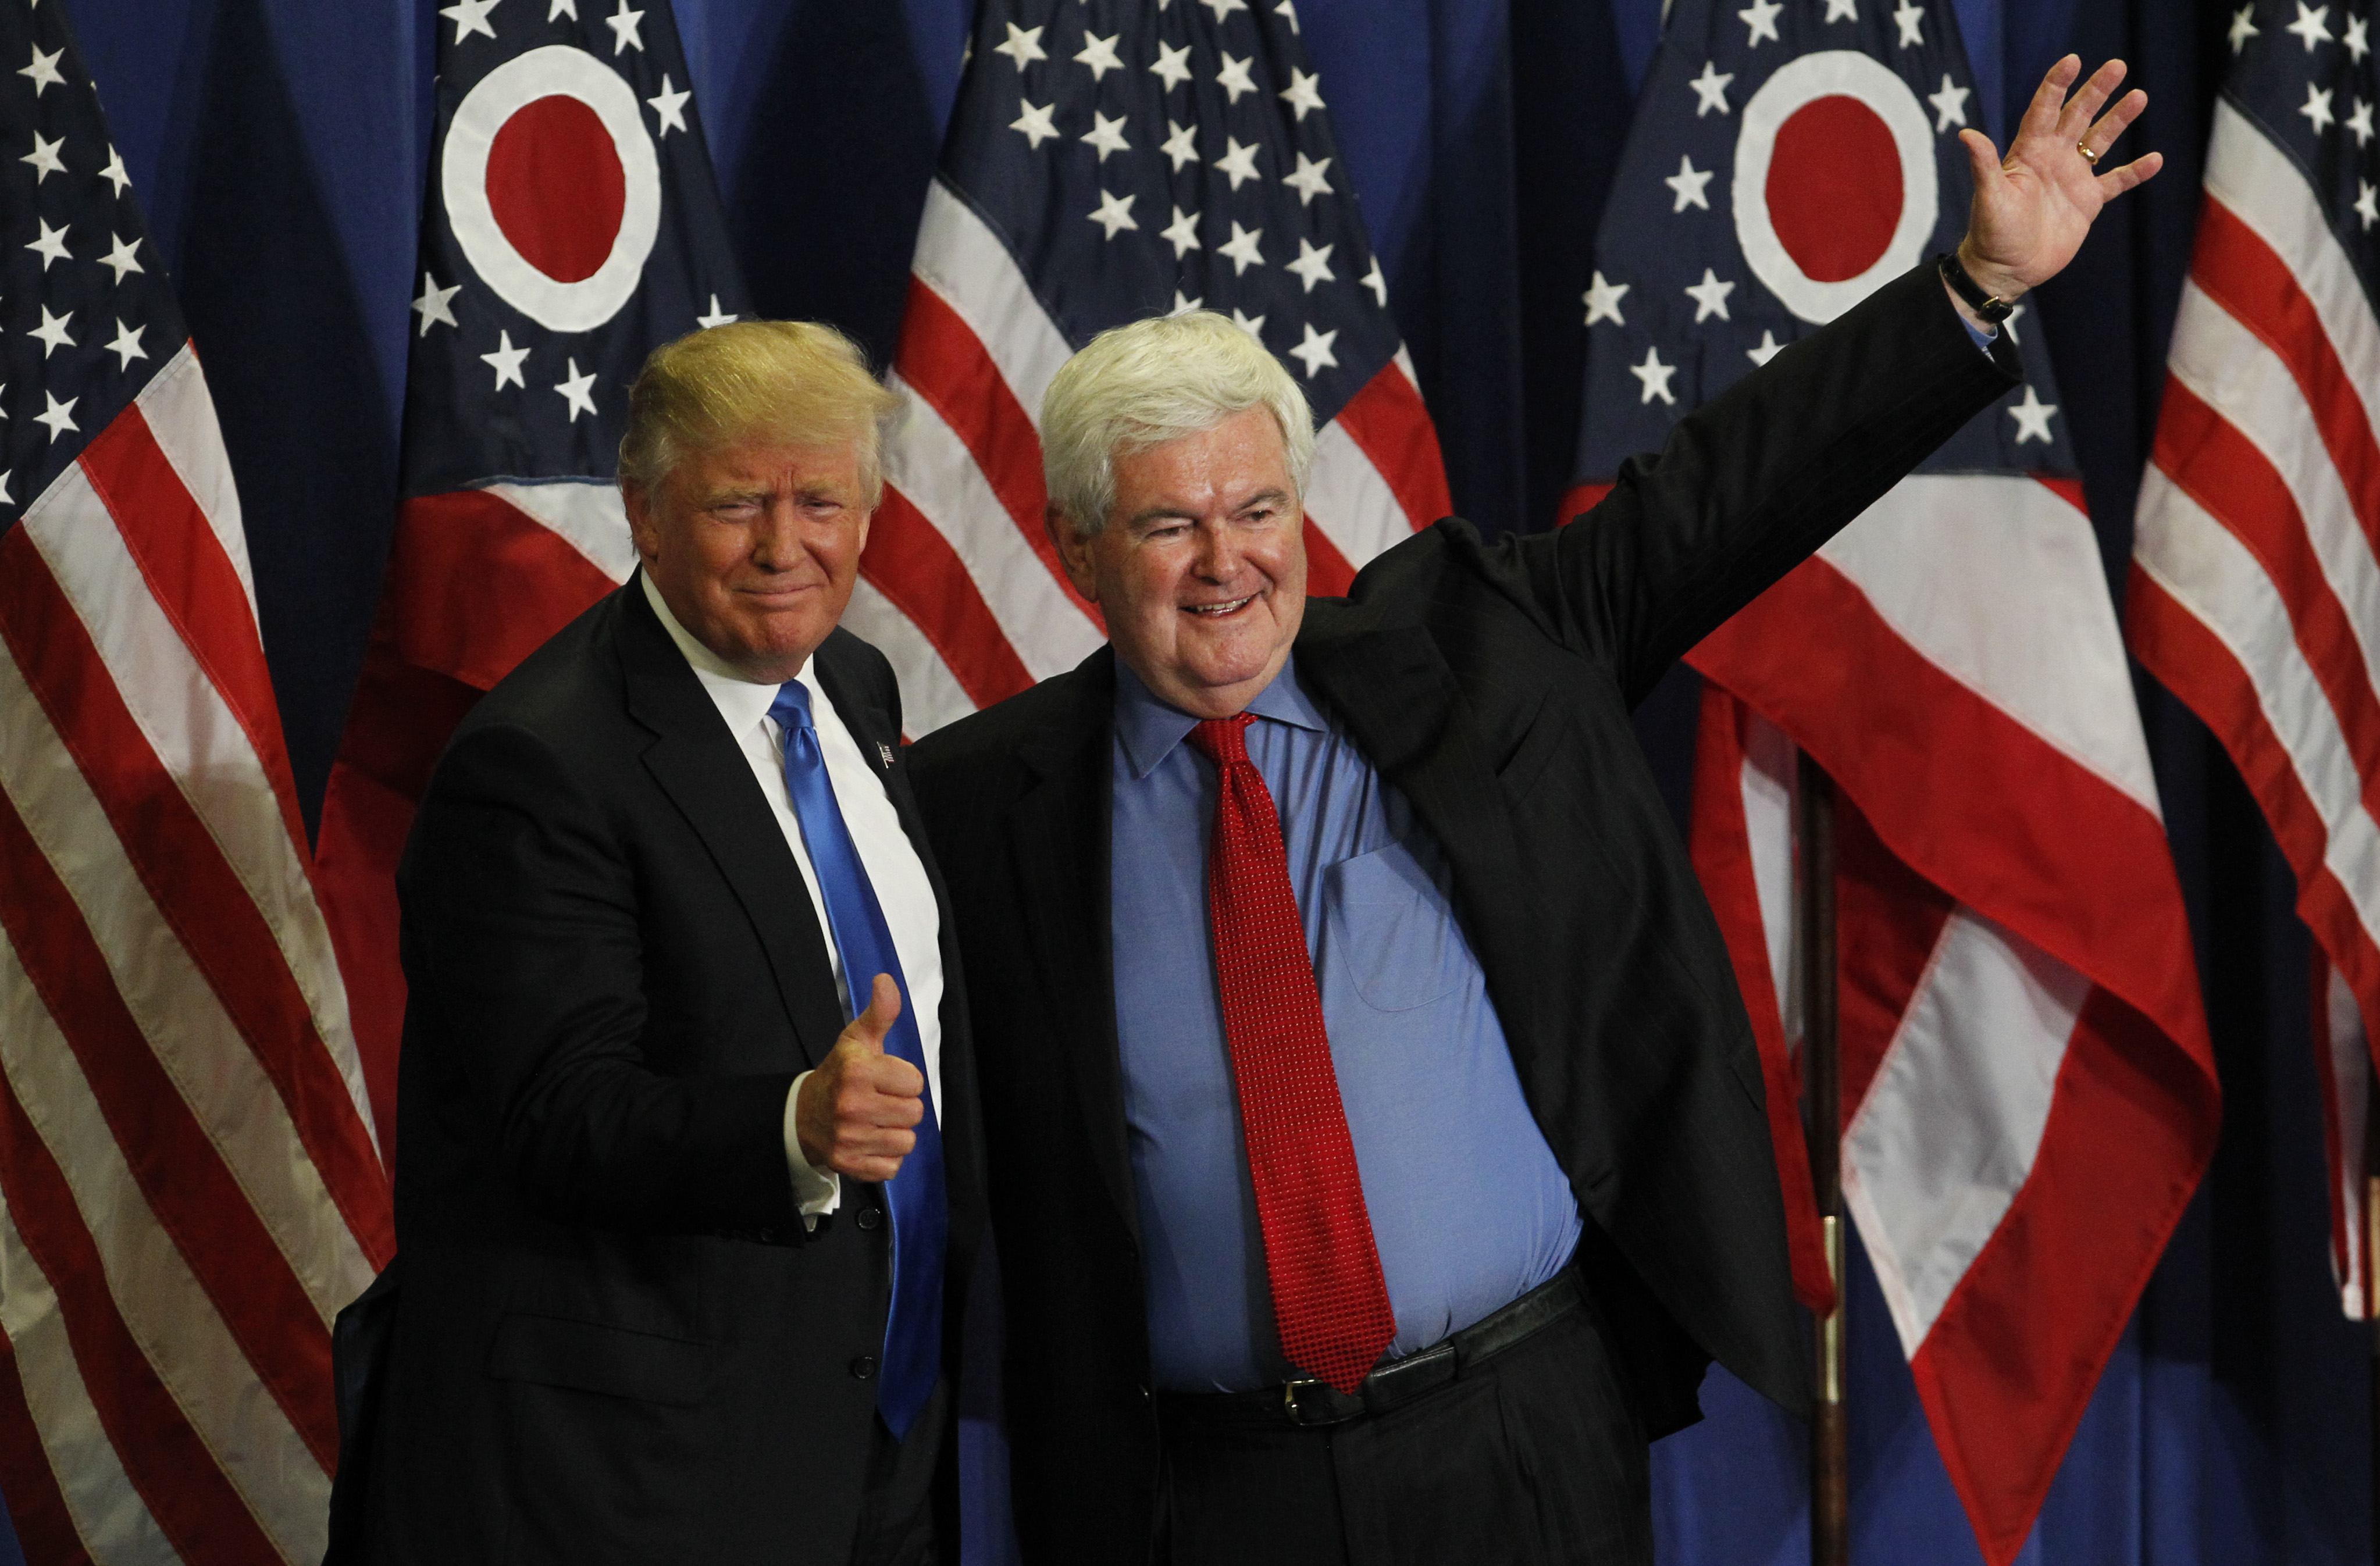 Former Speaker of the House Newt Gingrich (R) introduces Republican Presidential candidate Donald Trump during a rally at the Sharonville Convention Center in Cincinnati on July 6, 2016.